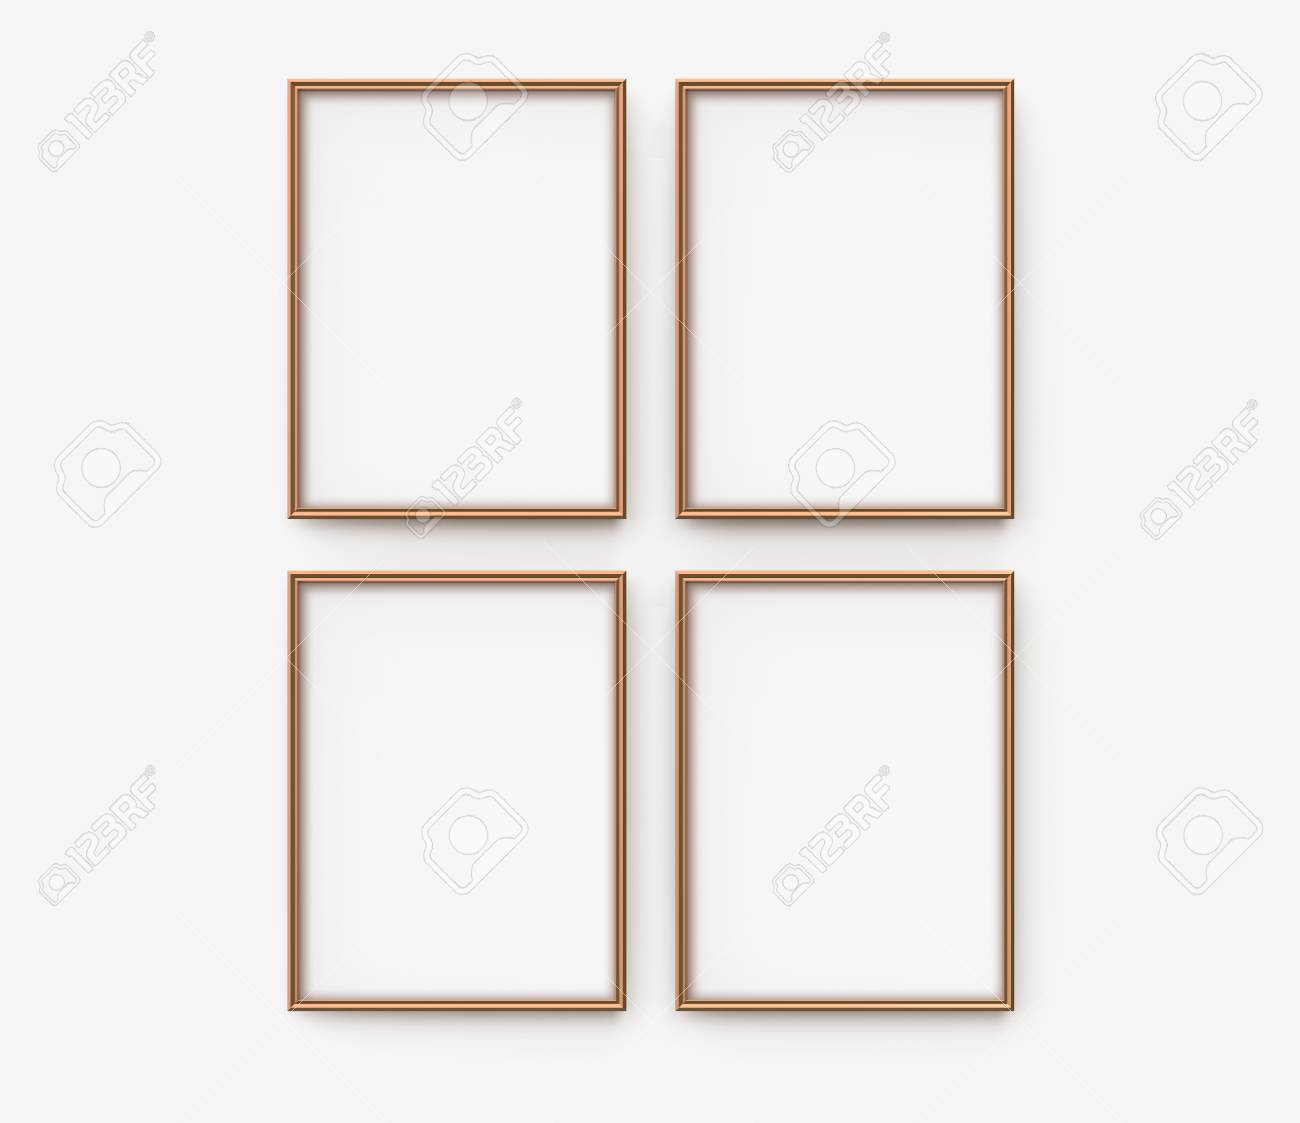 Beau Stock Photo   Wooden Picture Frame, 3d Render Blank Thin Frames Collection  With Empty Space For Decorative Uses